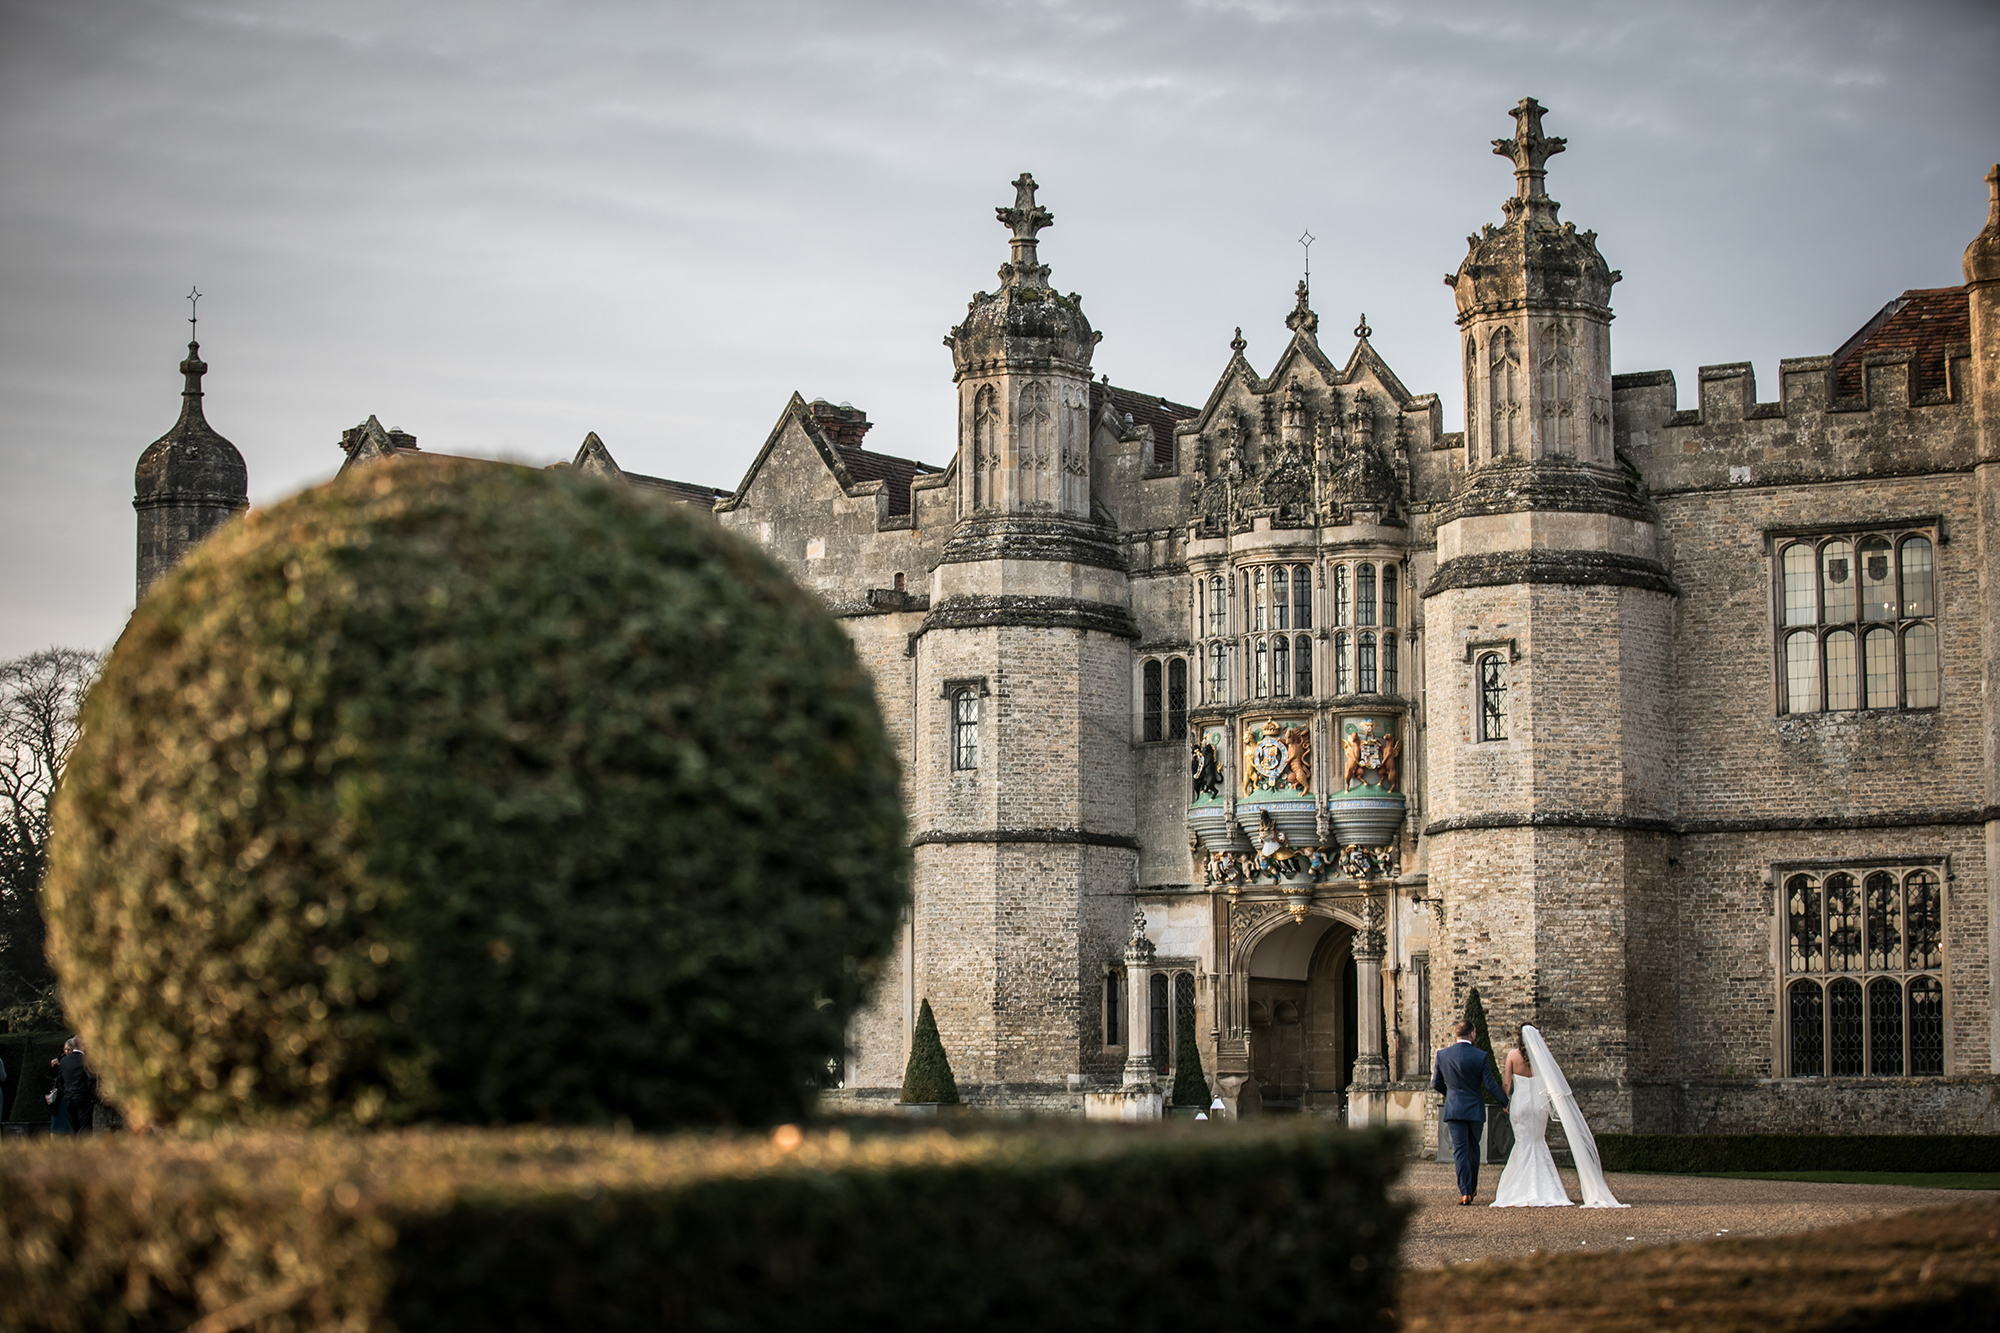 Newly married couple in the distance outside Hengrave Hall Wedding Venue